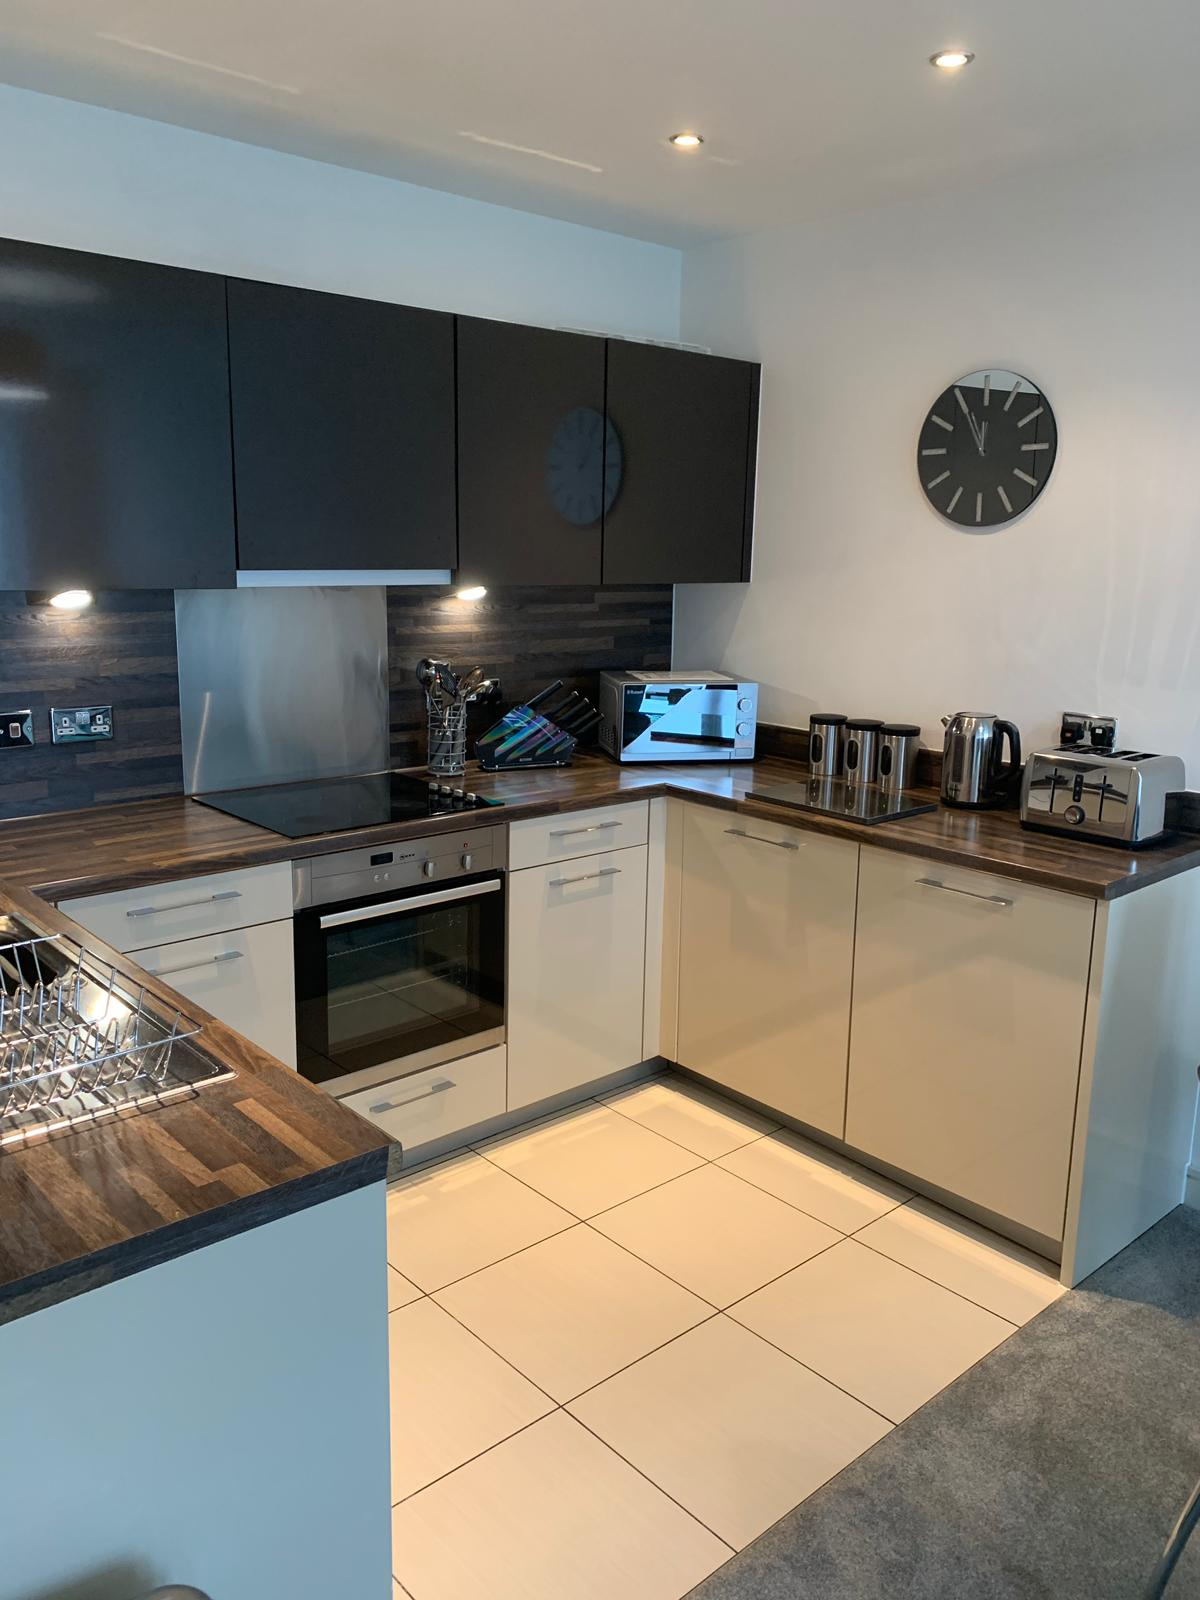 Kitchen at KD Tower Serviced Apartments